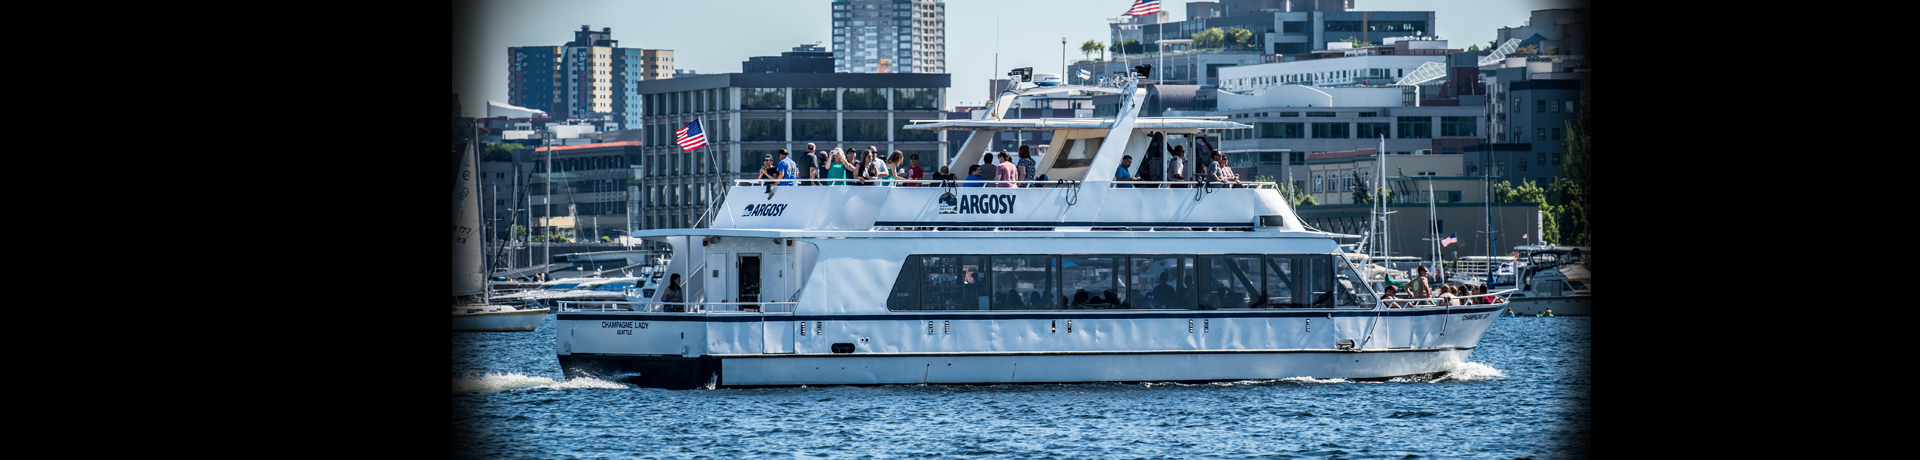 Argosy Cruises offers narrated boat tours of Seattle and surrounding areas year-round! Our fleet offers public tours as well as yacht charter services, contact us today!